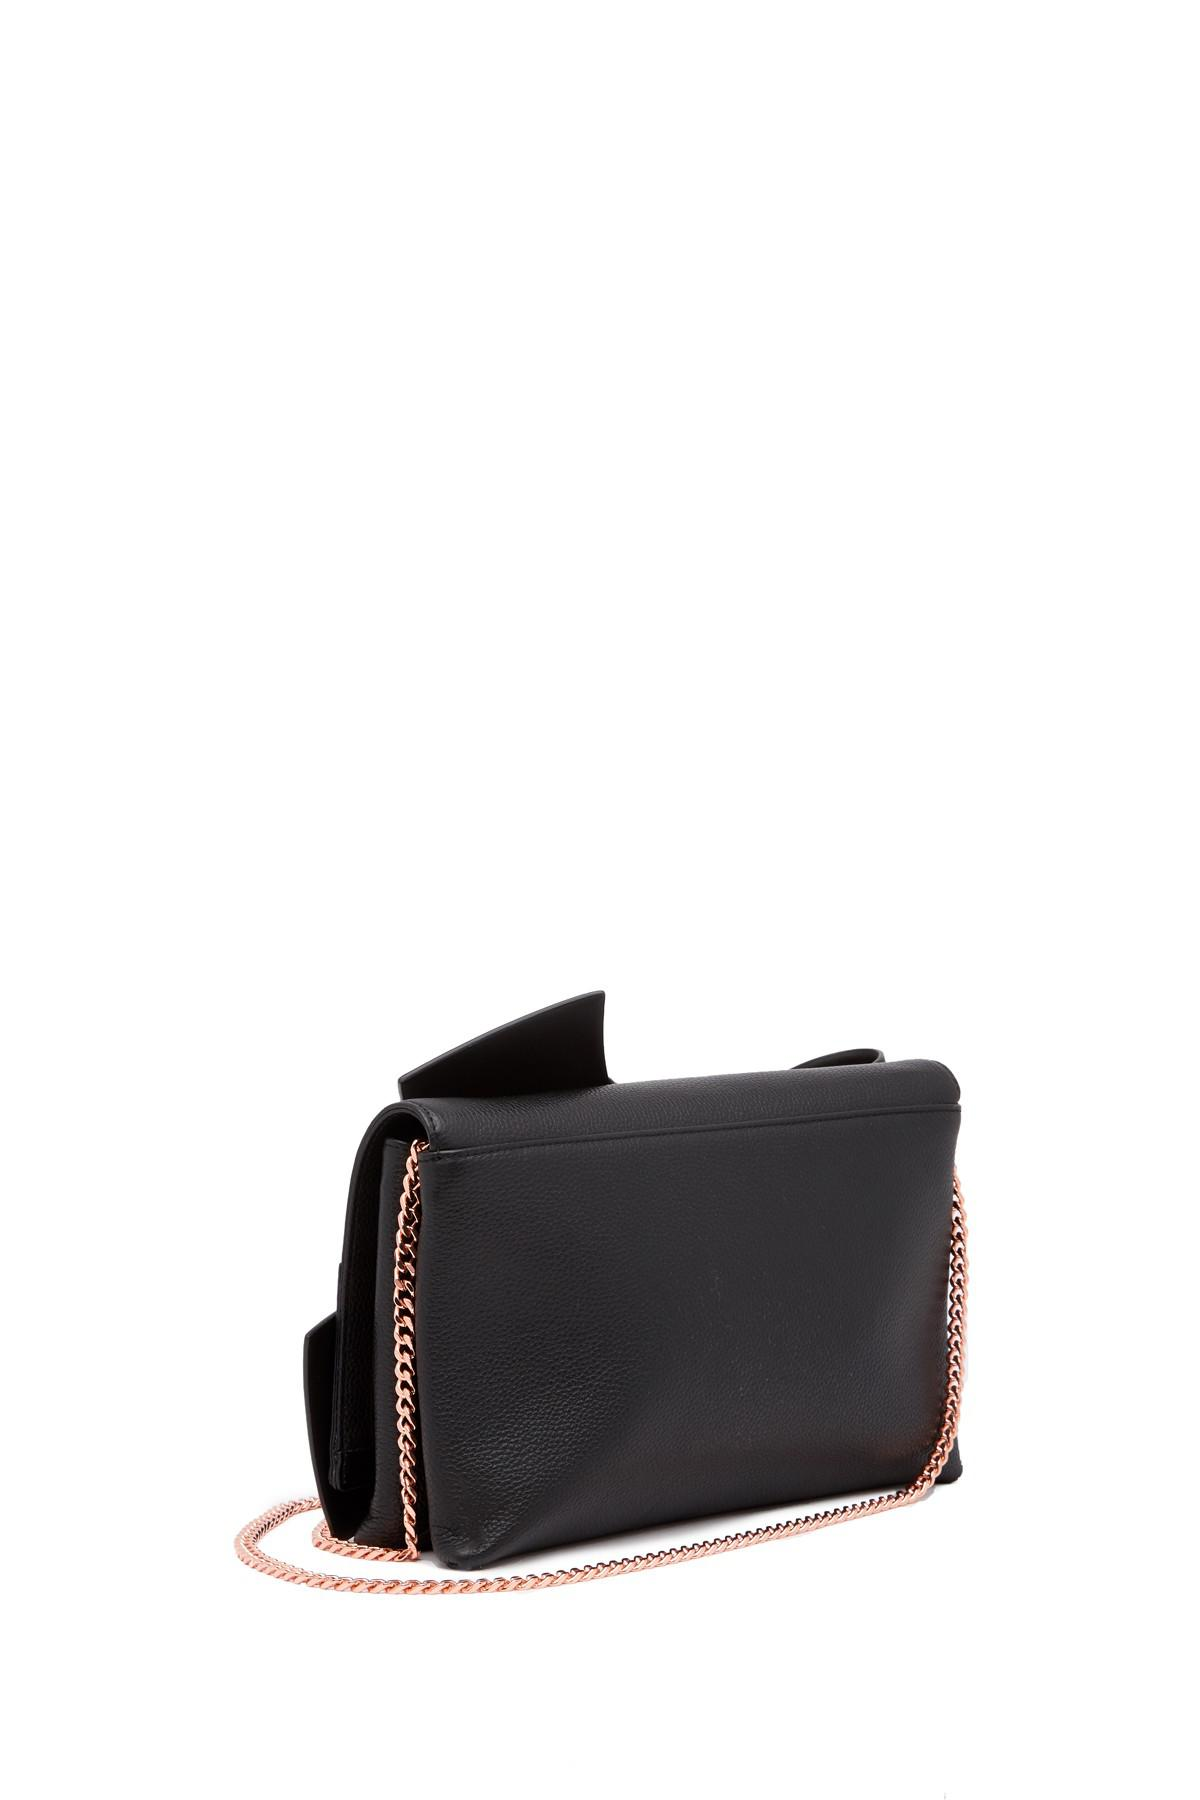 48299600a3c48 Lyst - Ted Baker Asterr Giant Knot Bot Leather Clutch Bag in Black